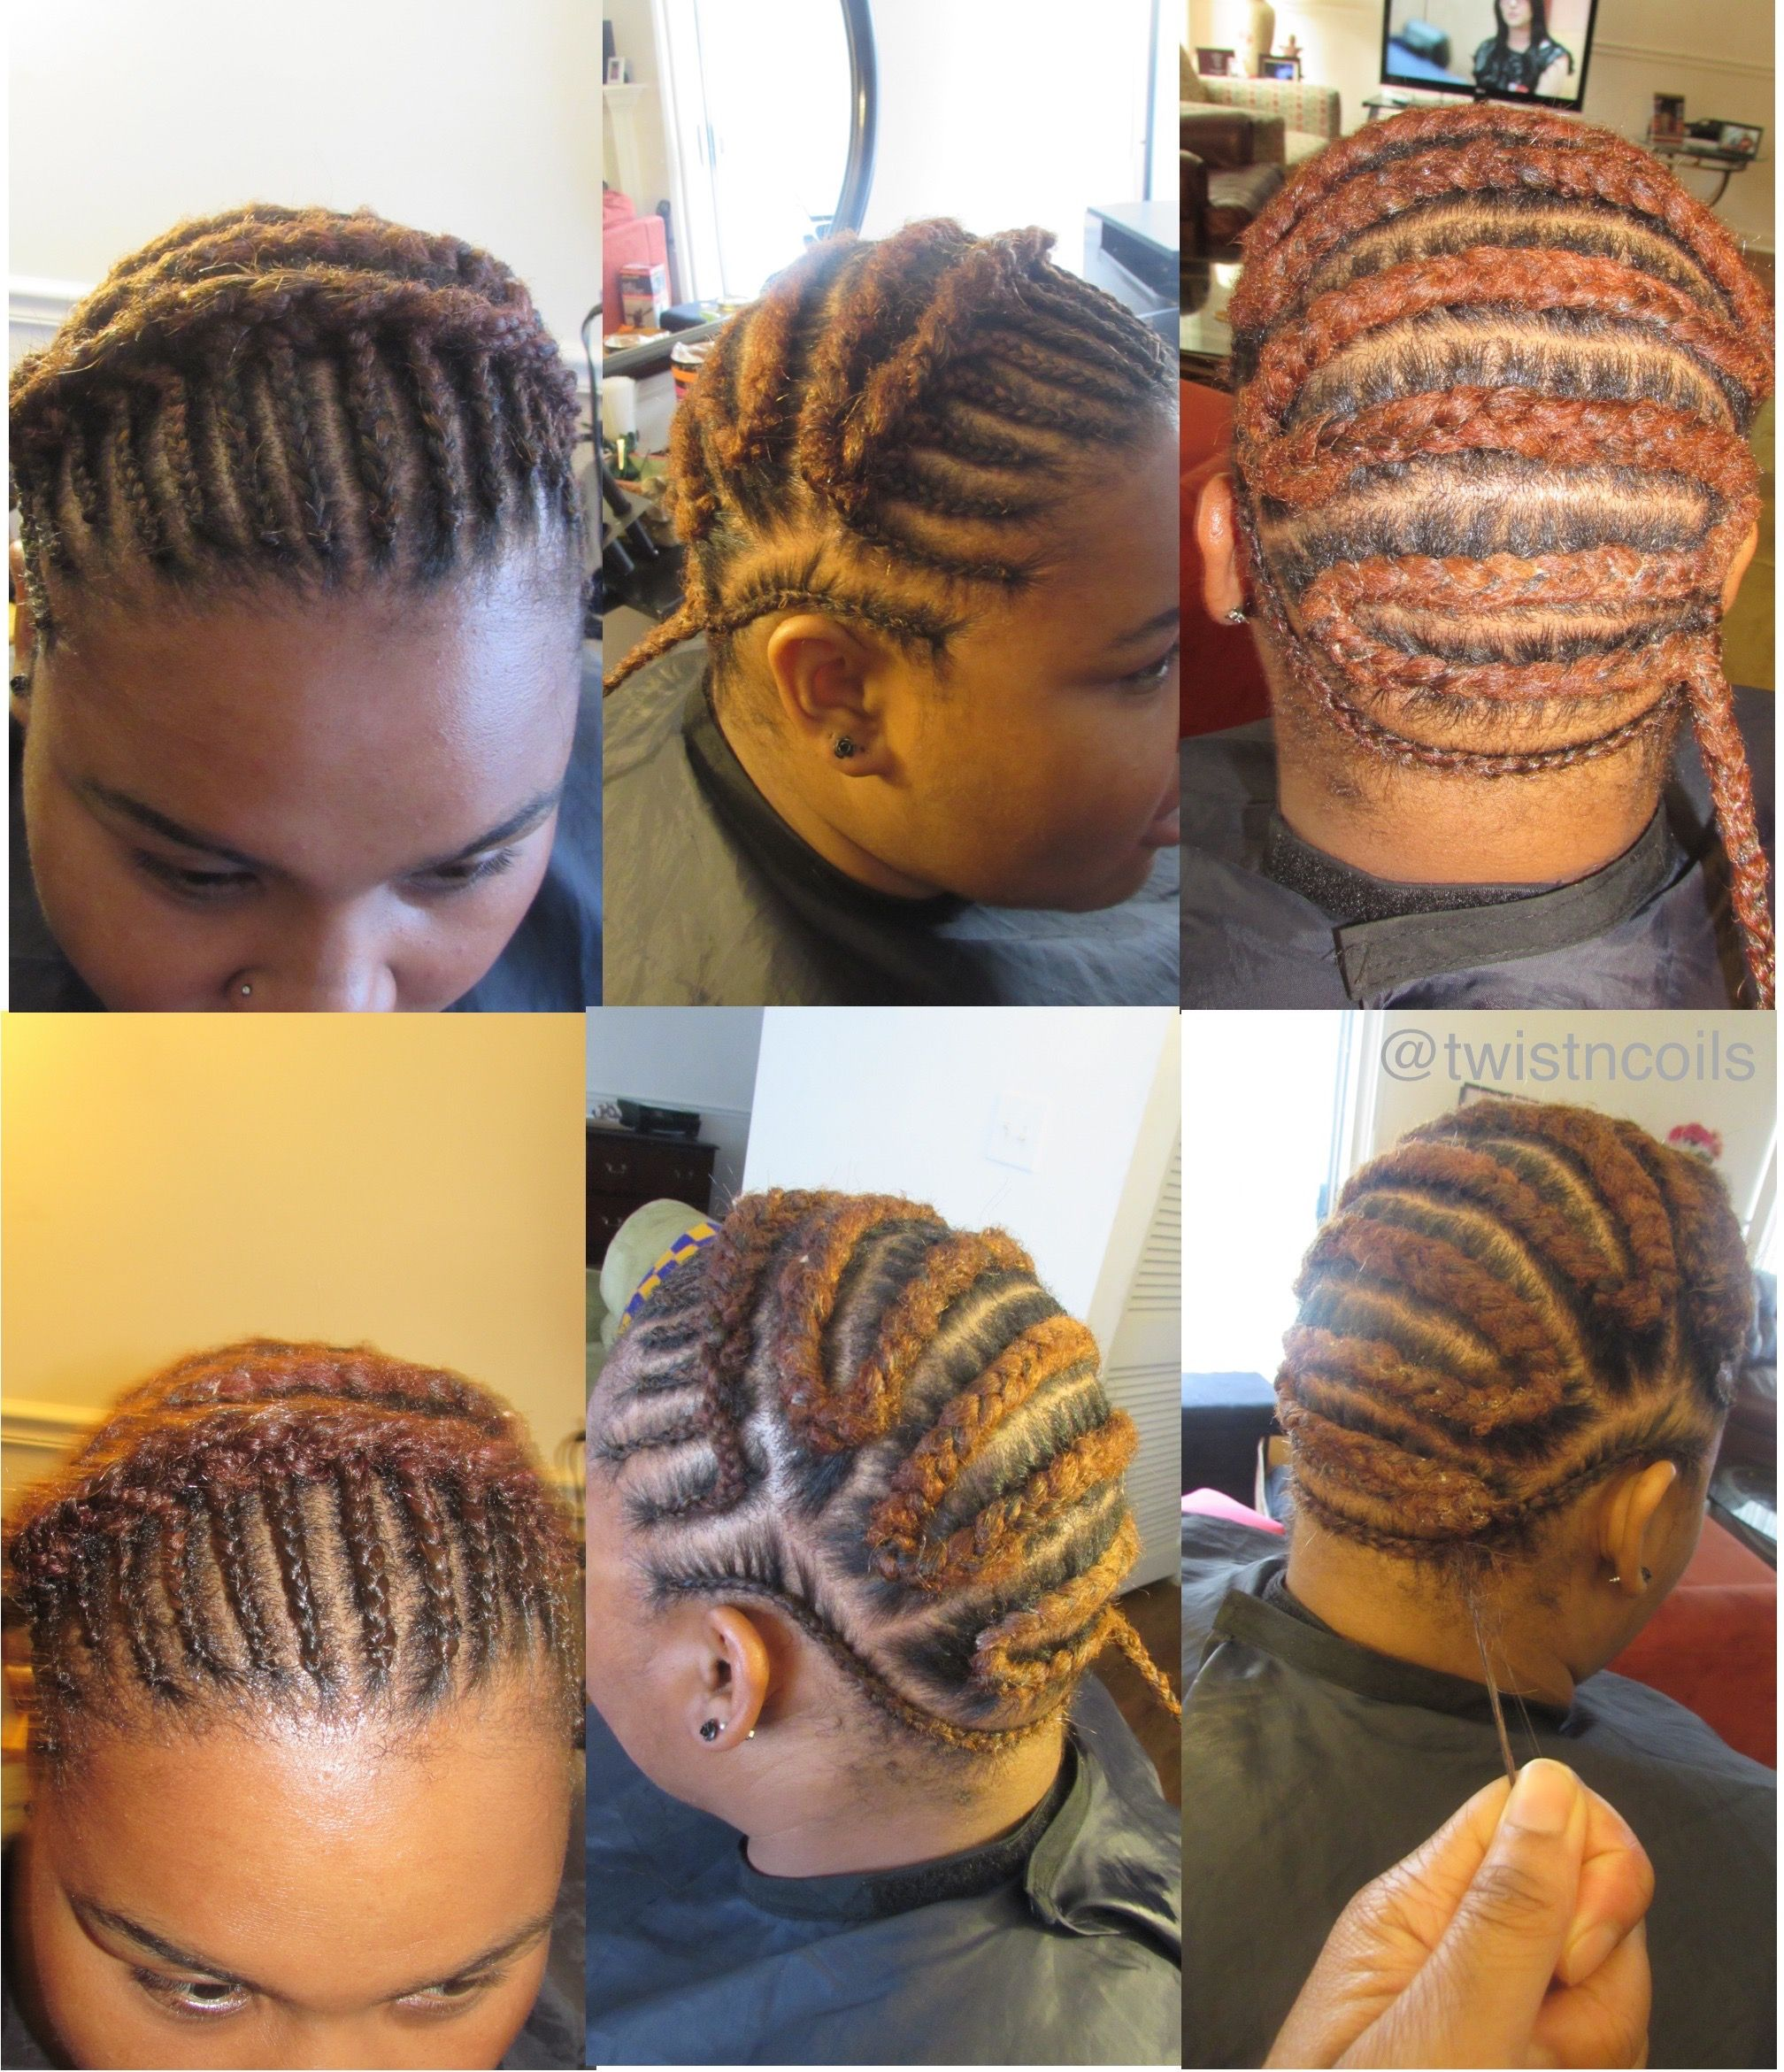 Braid Pattern For Crochet Braids TnC Locs Pinterest Braid - Diy braid pattern